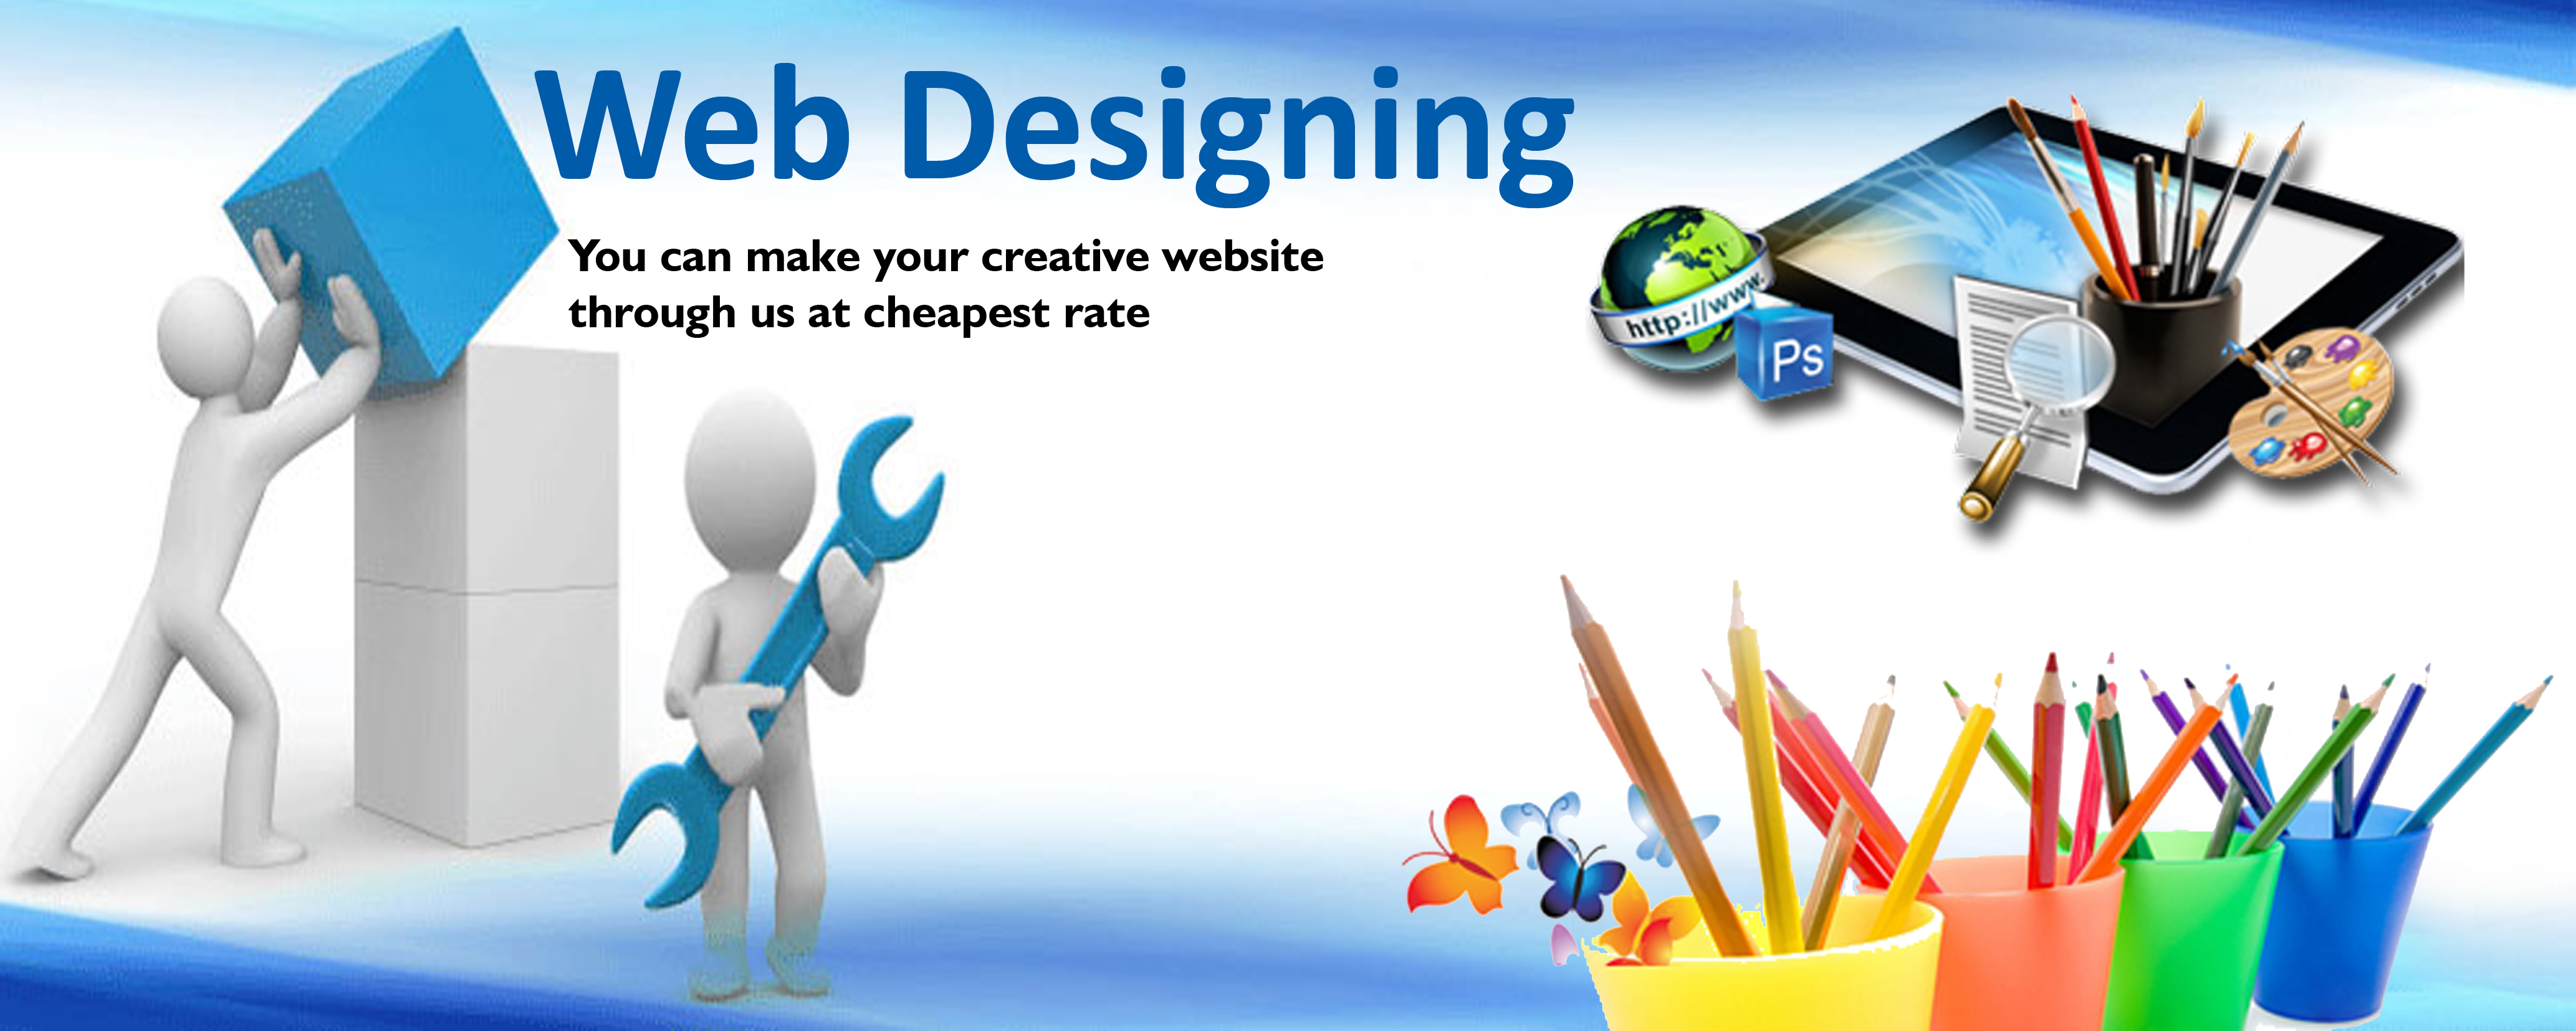 Do your photoshop work banner editing designing - Home design websites free ...